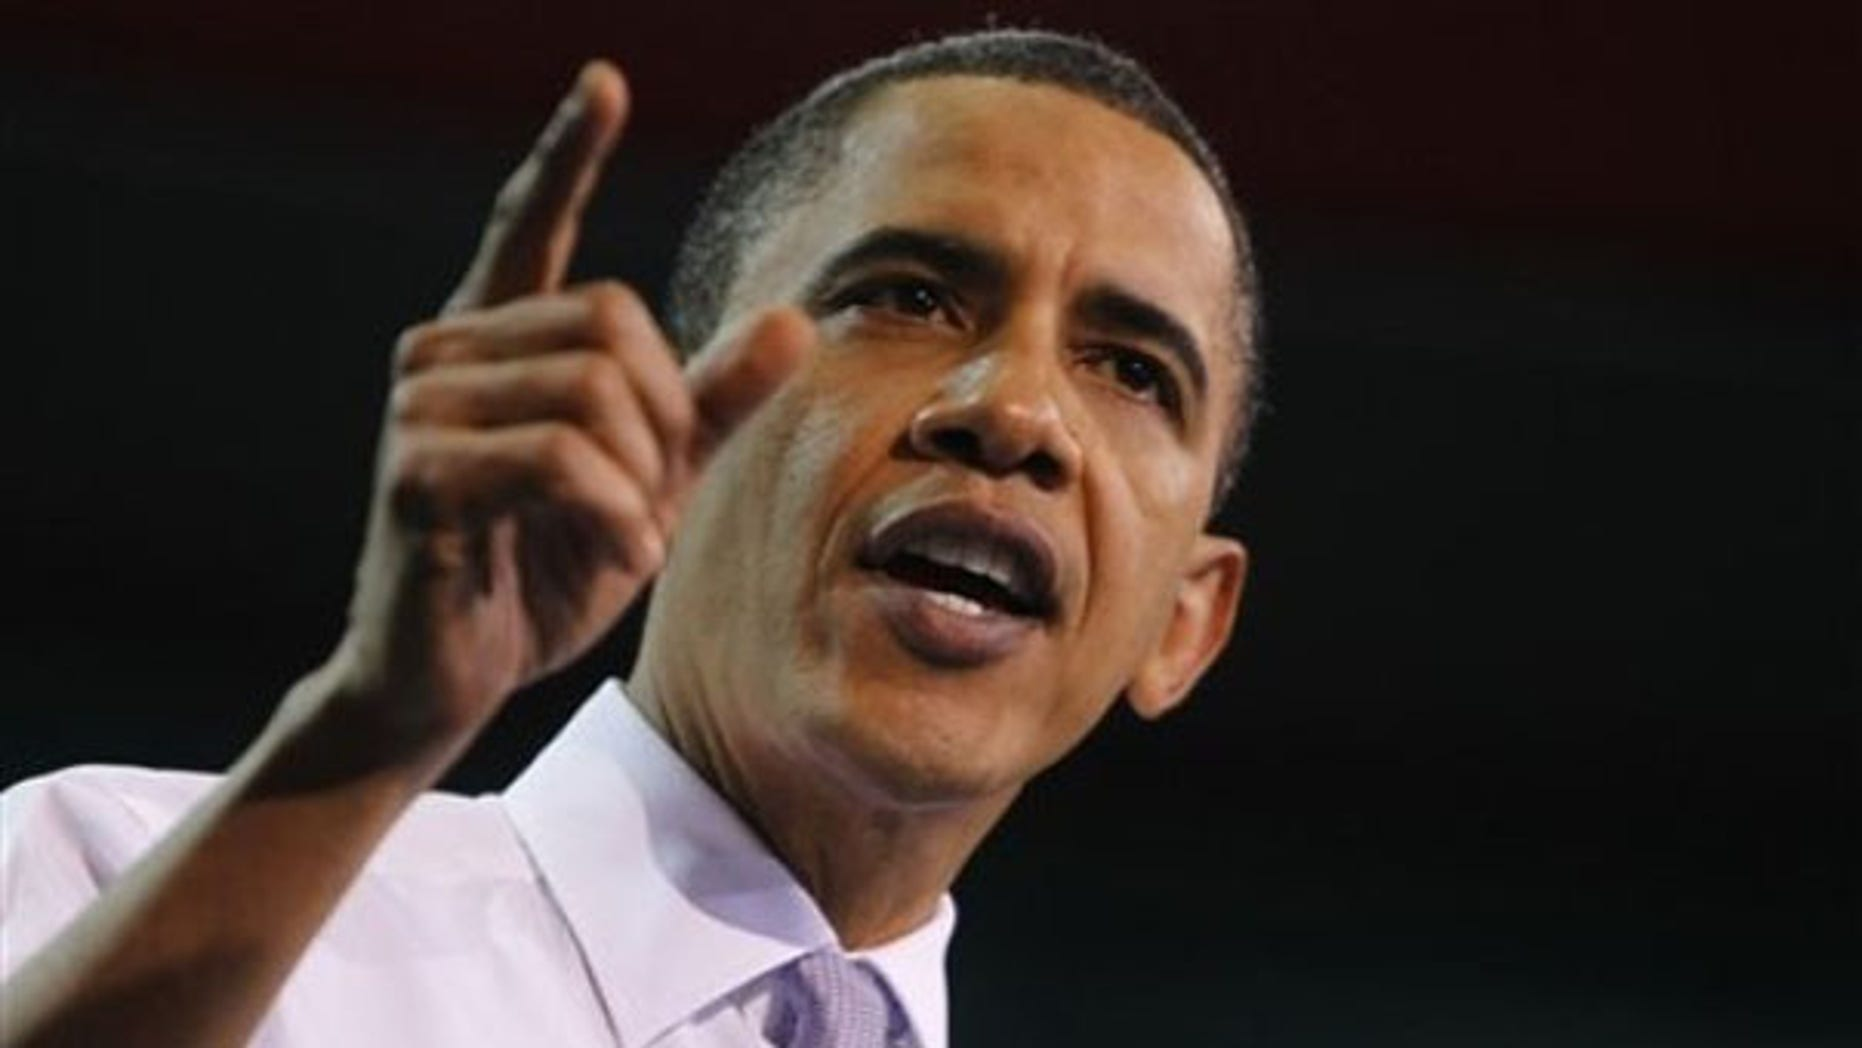 President Obama speaks about health care reform at the University of Iowa in Iowa City March 25. (AP Photo)